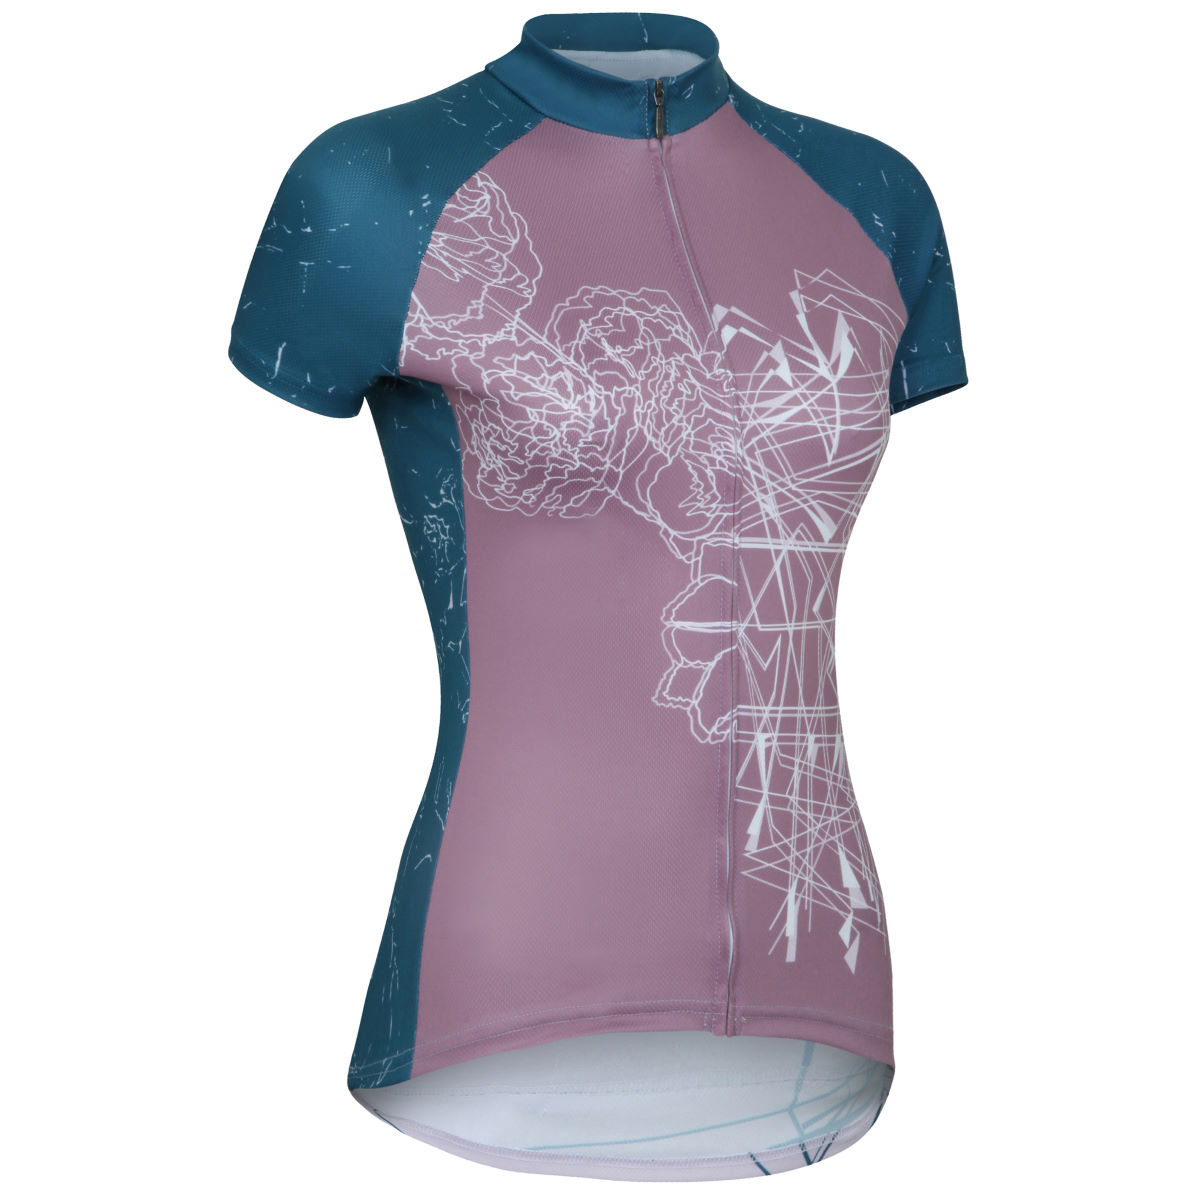 Maillot Femme Primal Bedlam (coupe sportive) - 2XL Purple/Blue